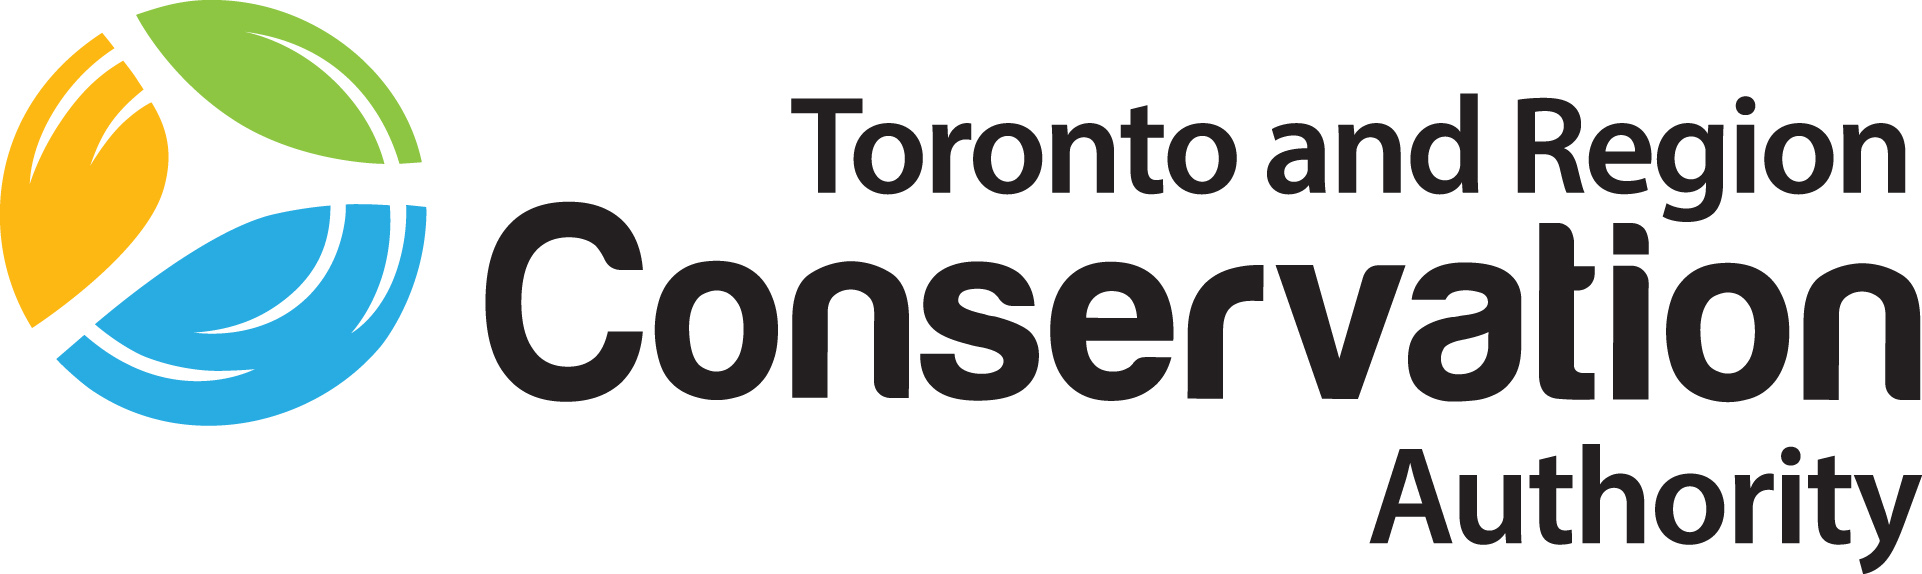 Toronto and Region Conservation Authority